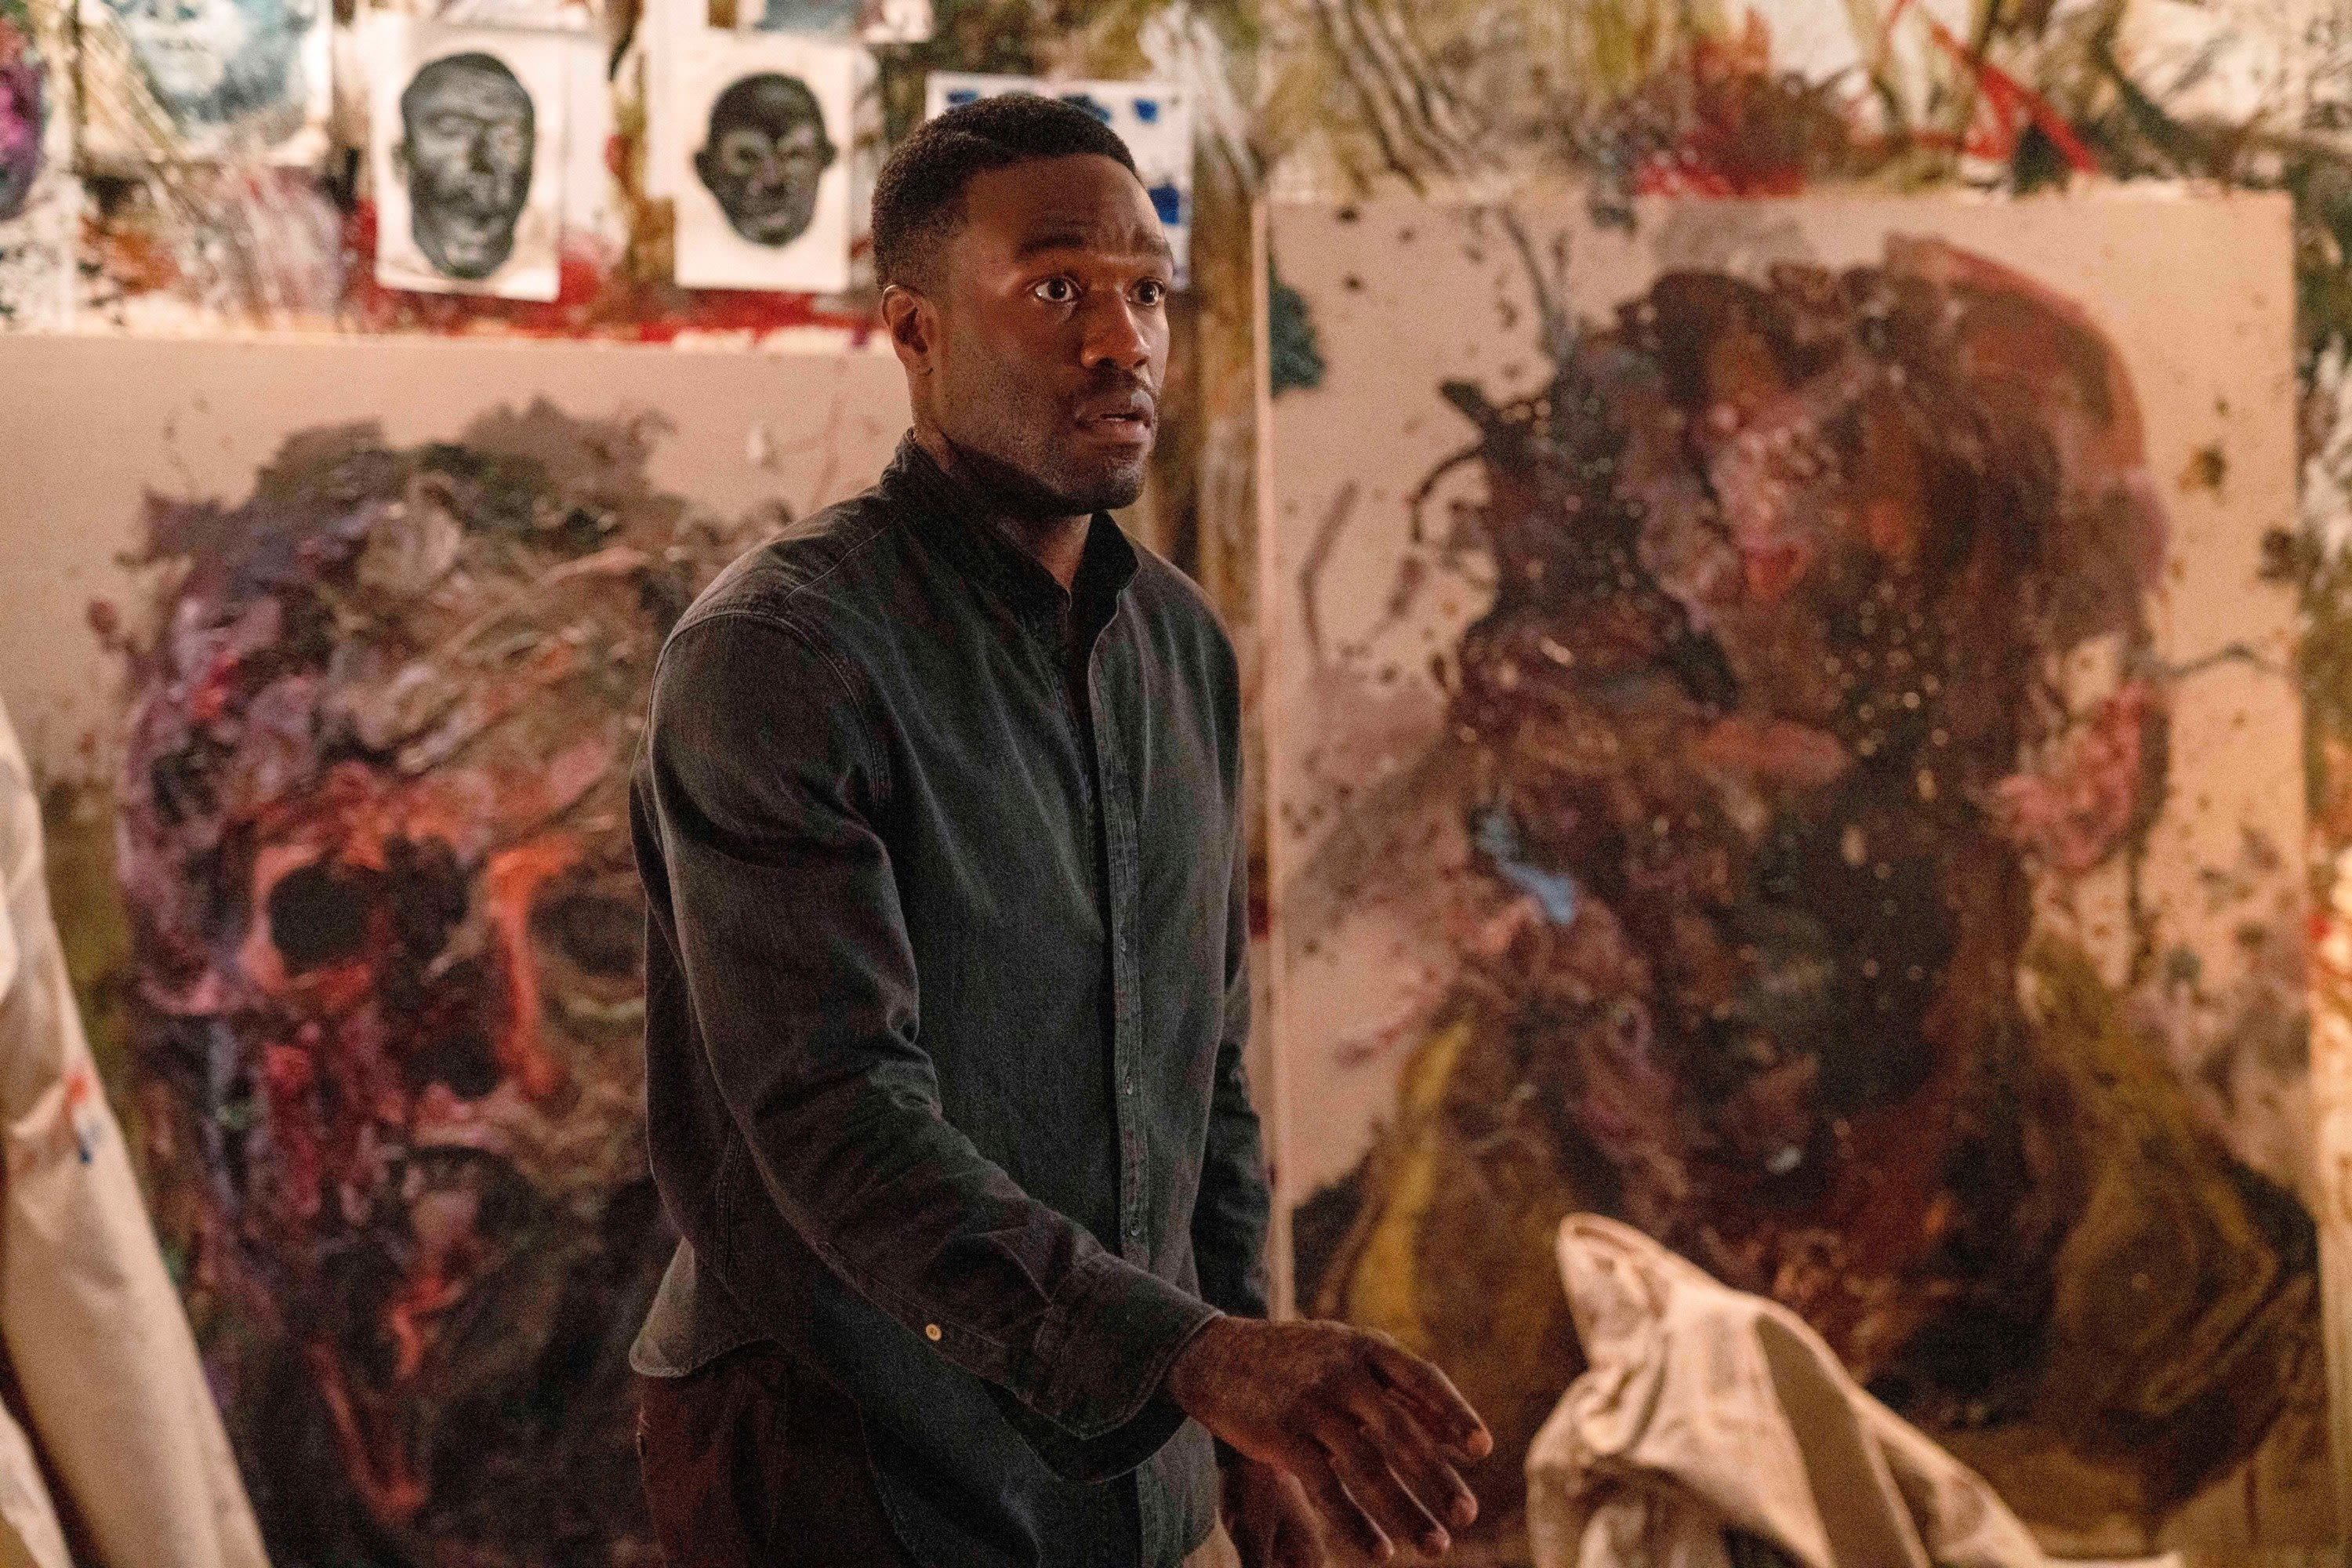 Yahya stands in front of paintings as Anthony in 'Candyman'